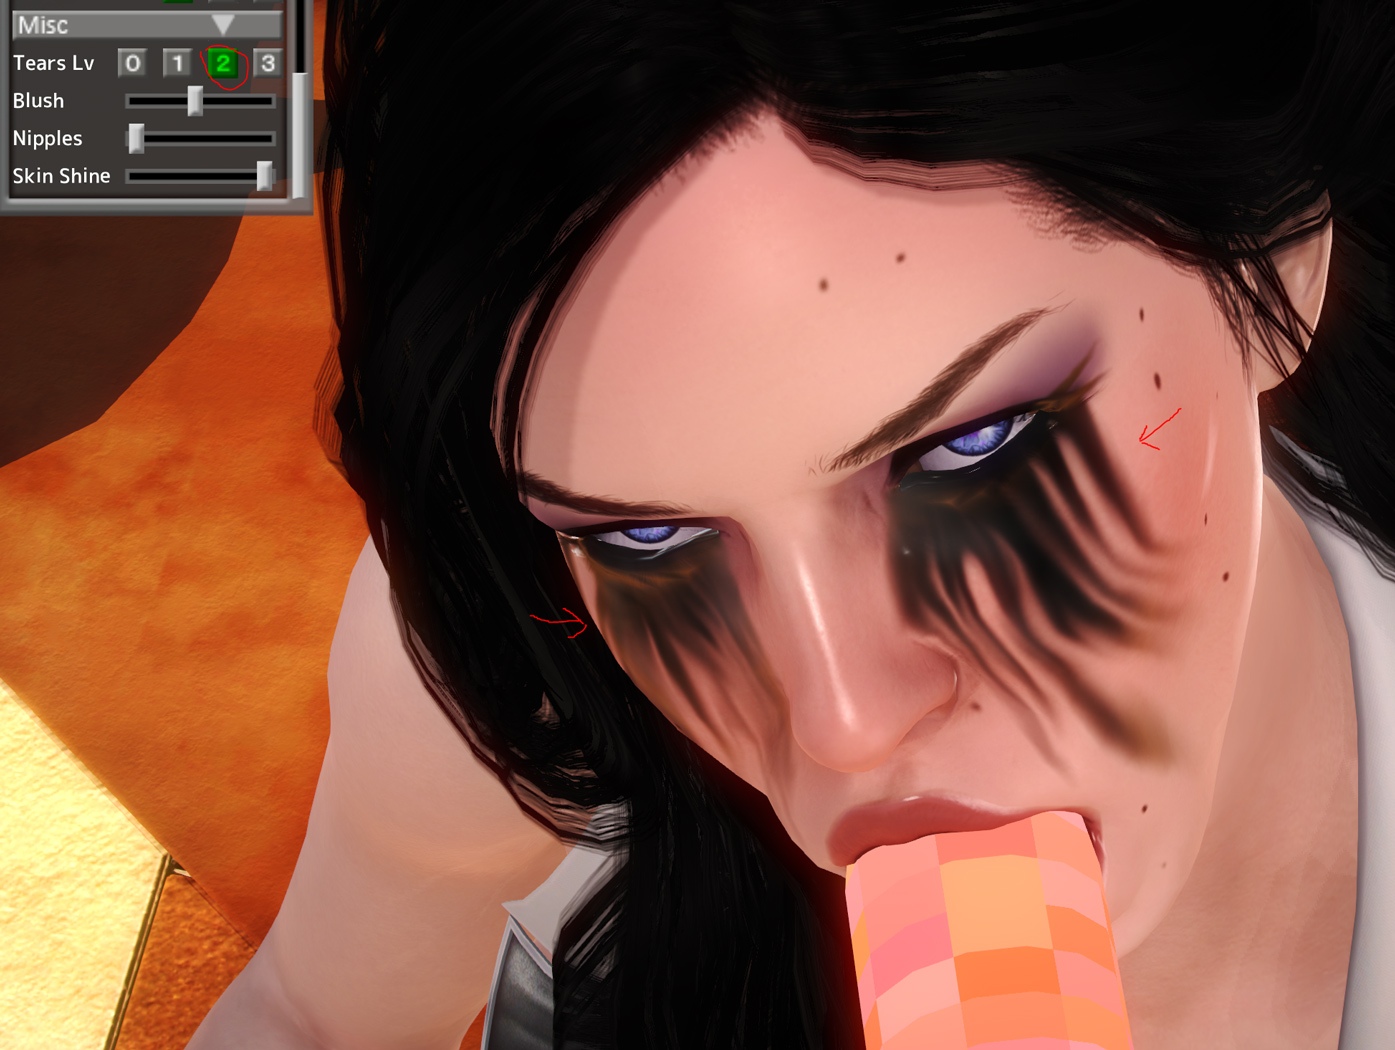 HS][Request] Yennefer TW3 Character Mod (Fixed ID conflict